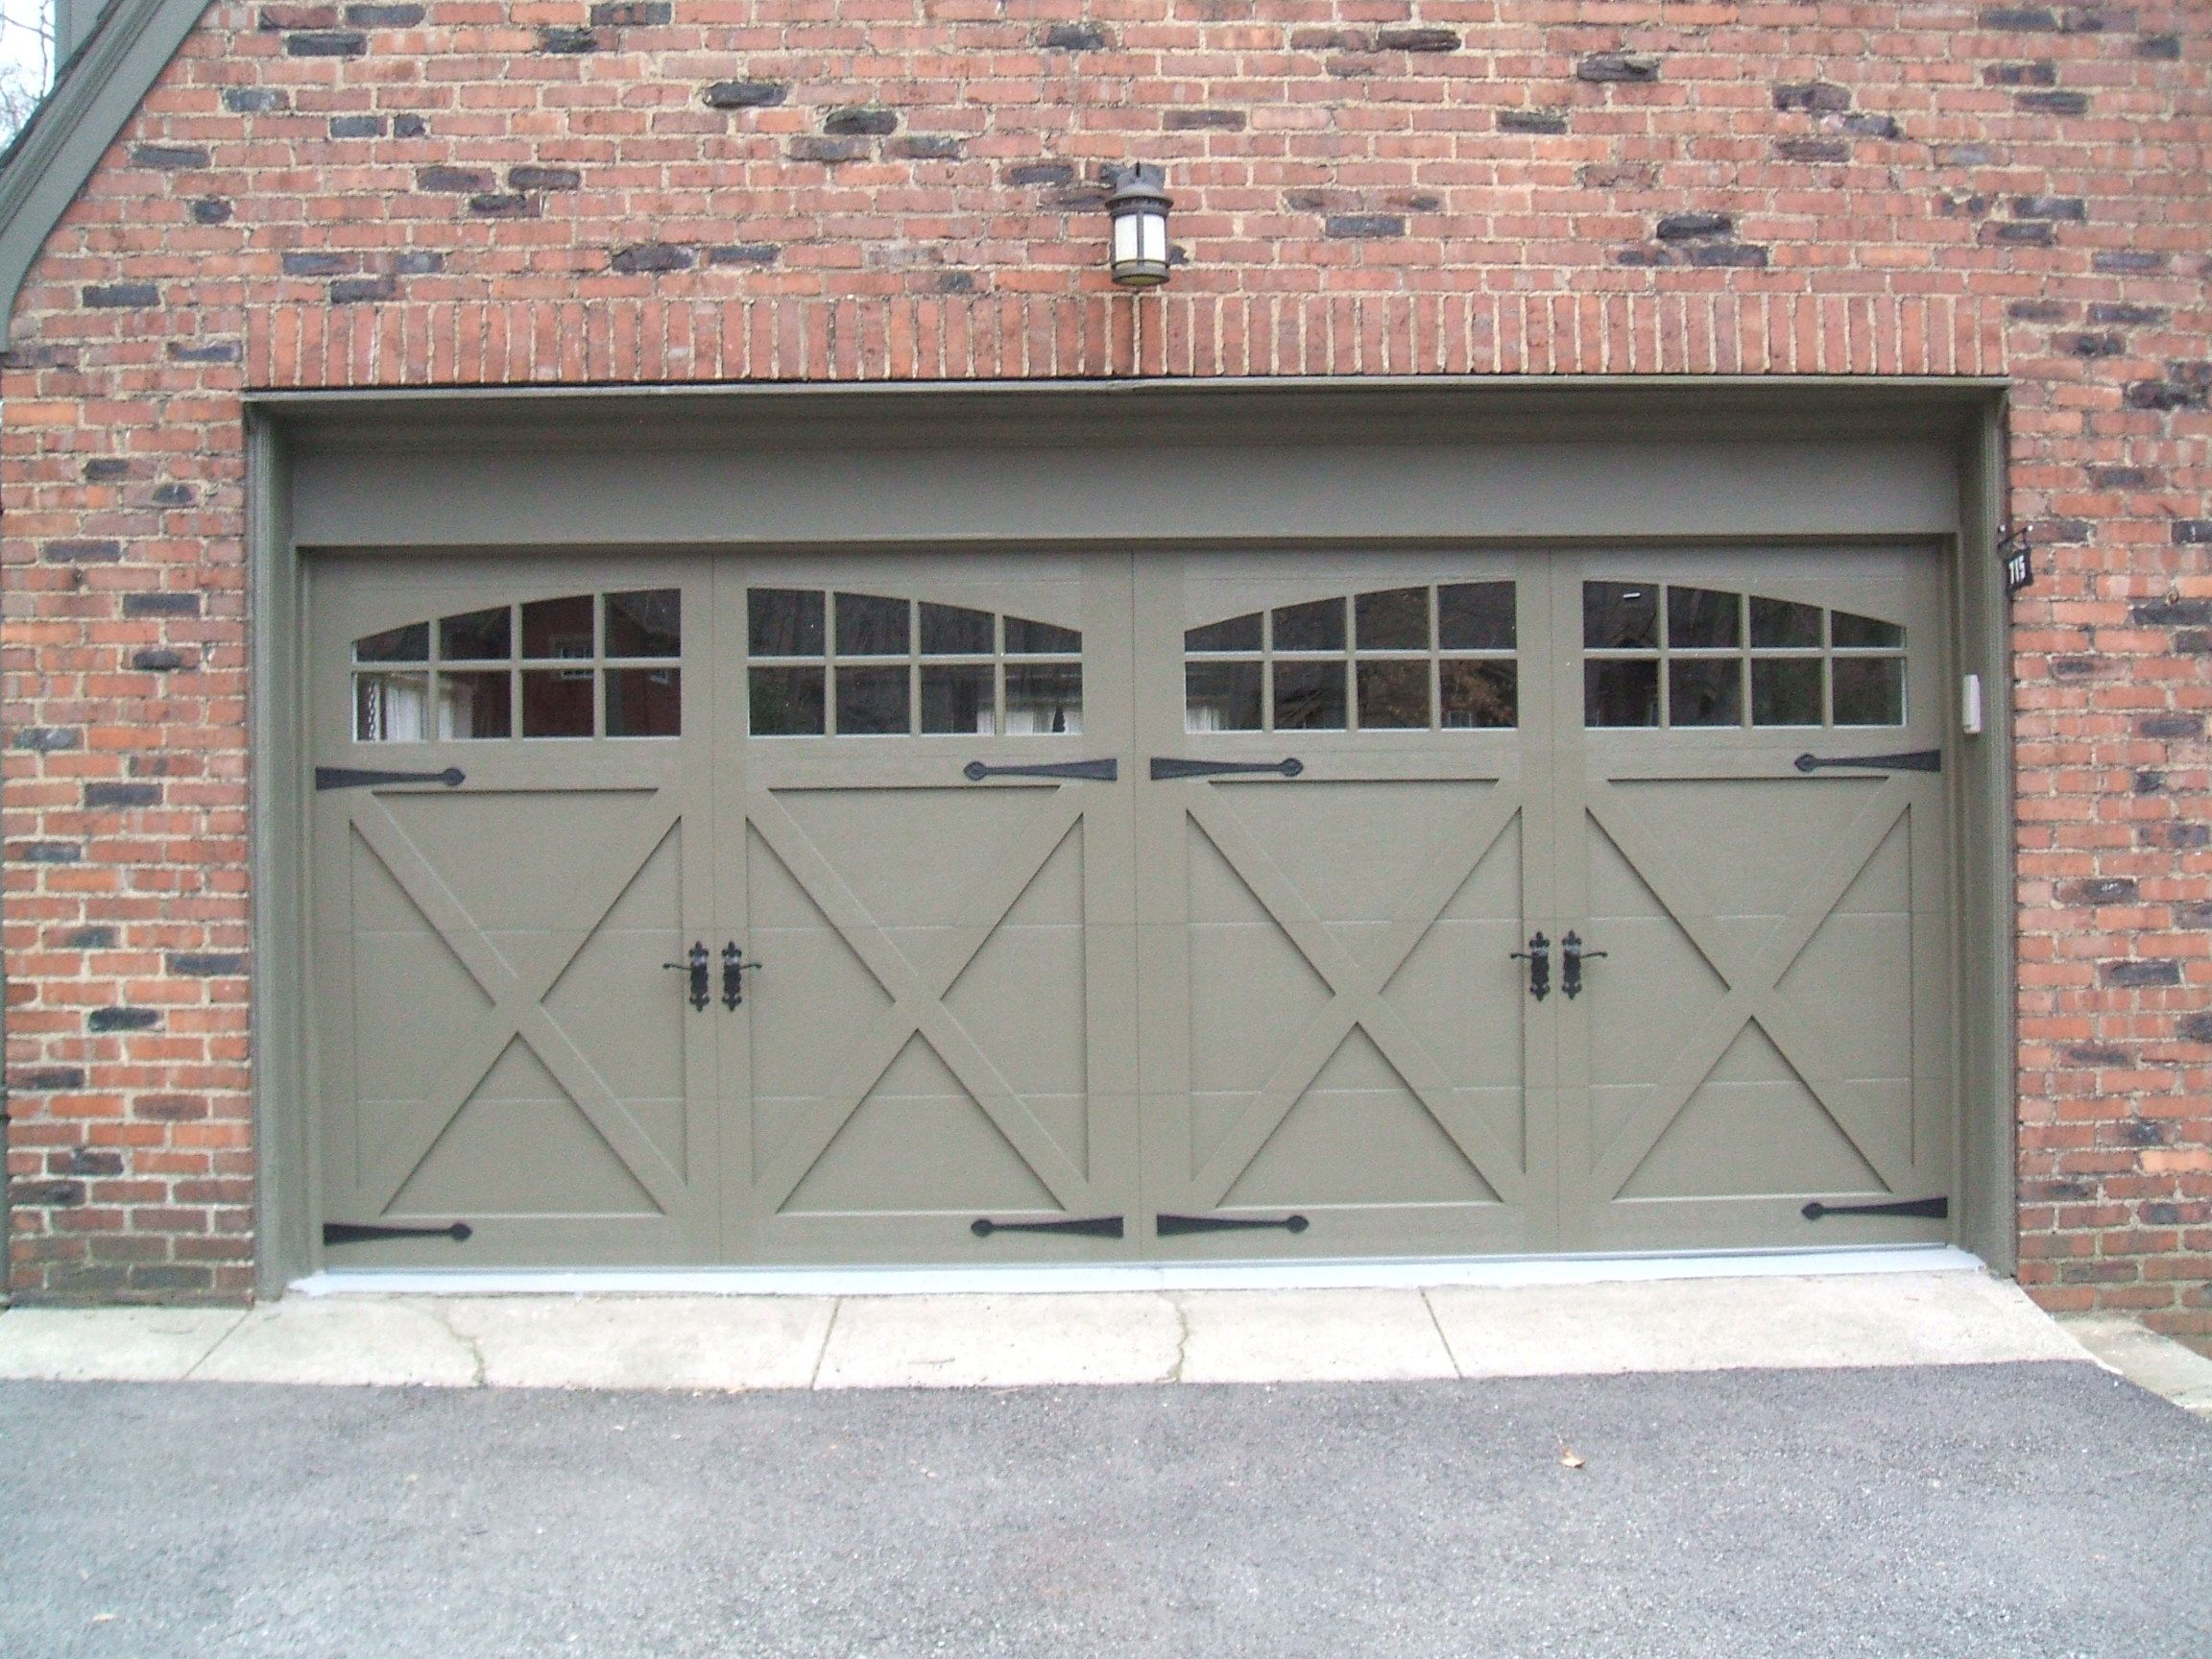 17 Best ideas about Chi Garage Doors on Pinterest | Garage doors, Carriage  garage doors and Garage door styles